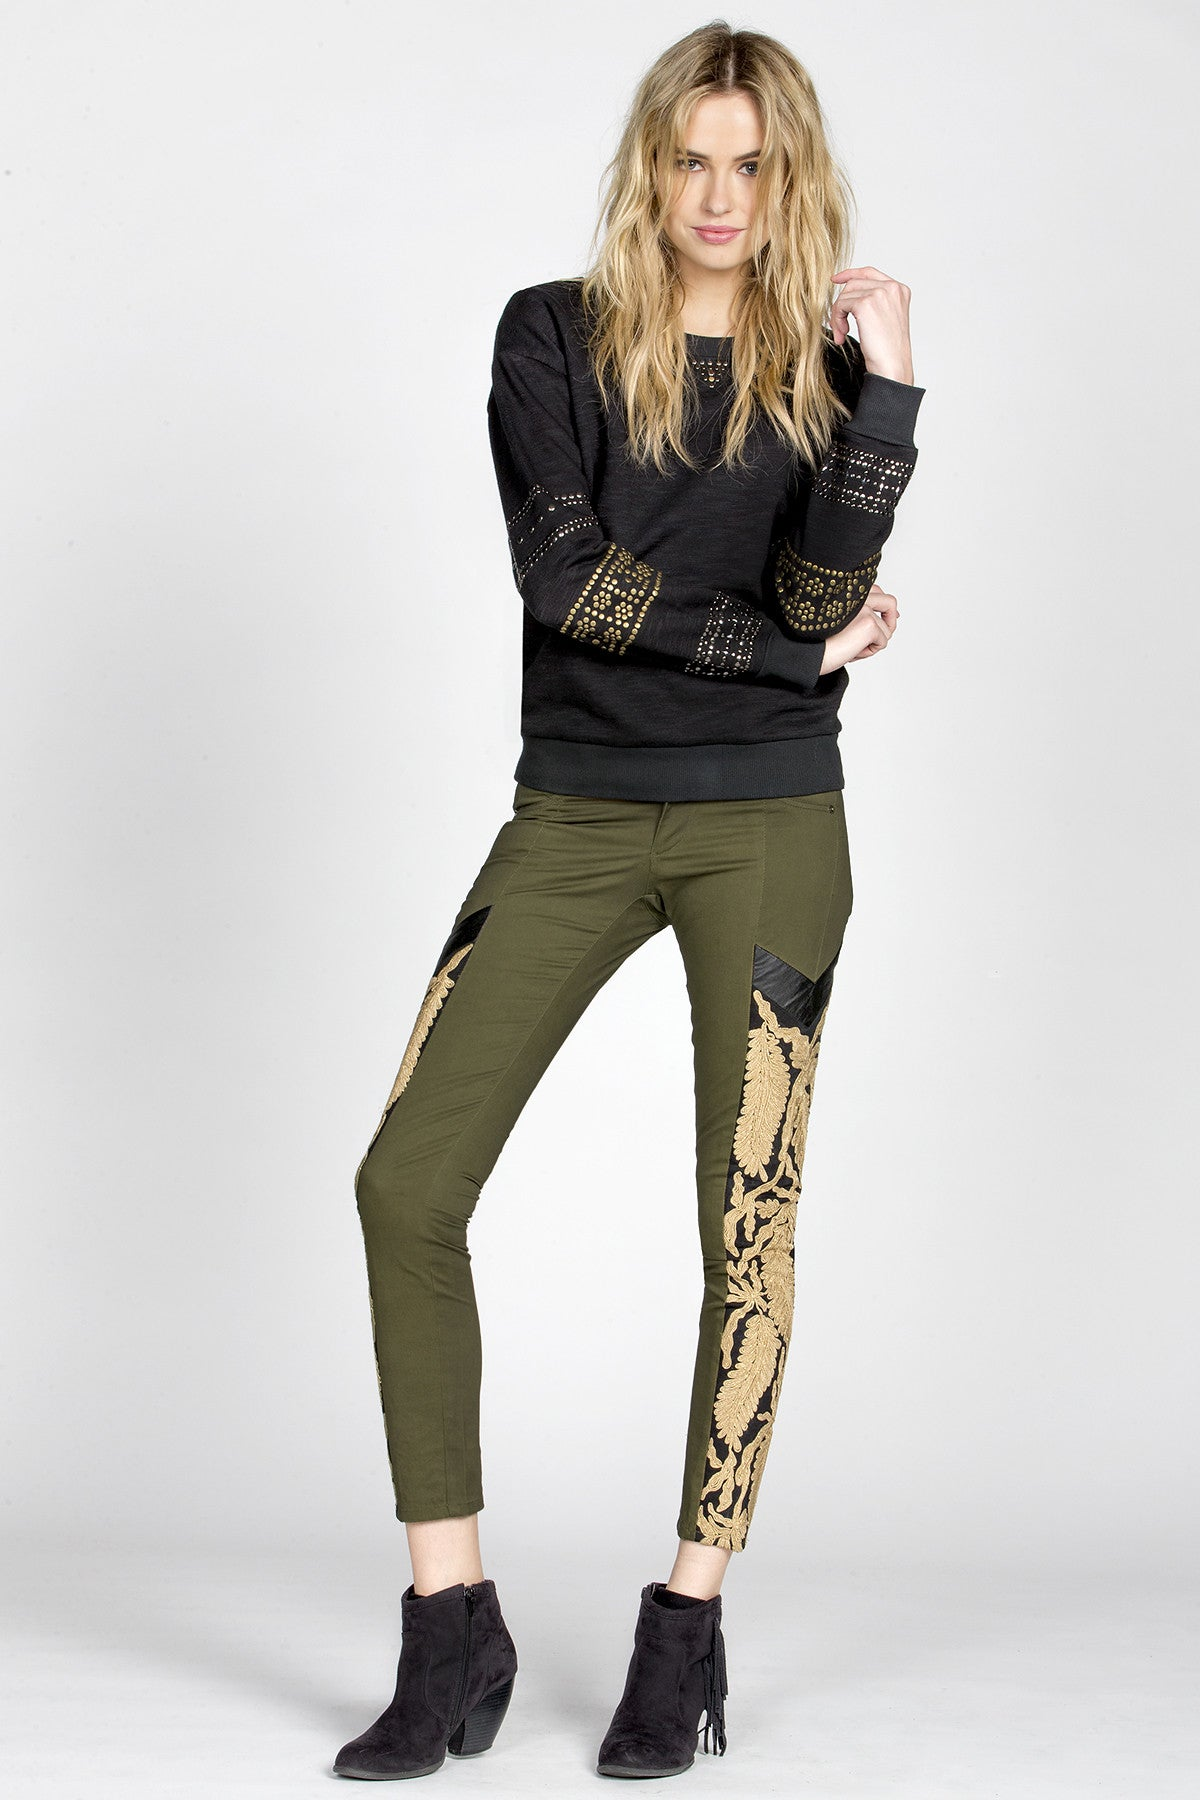 MM Vintage Strike Gold Embroidered Pants-5